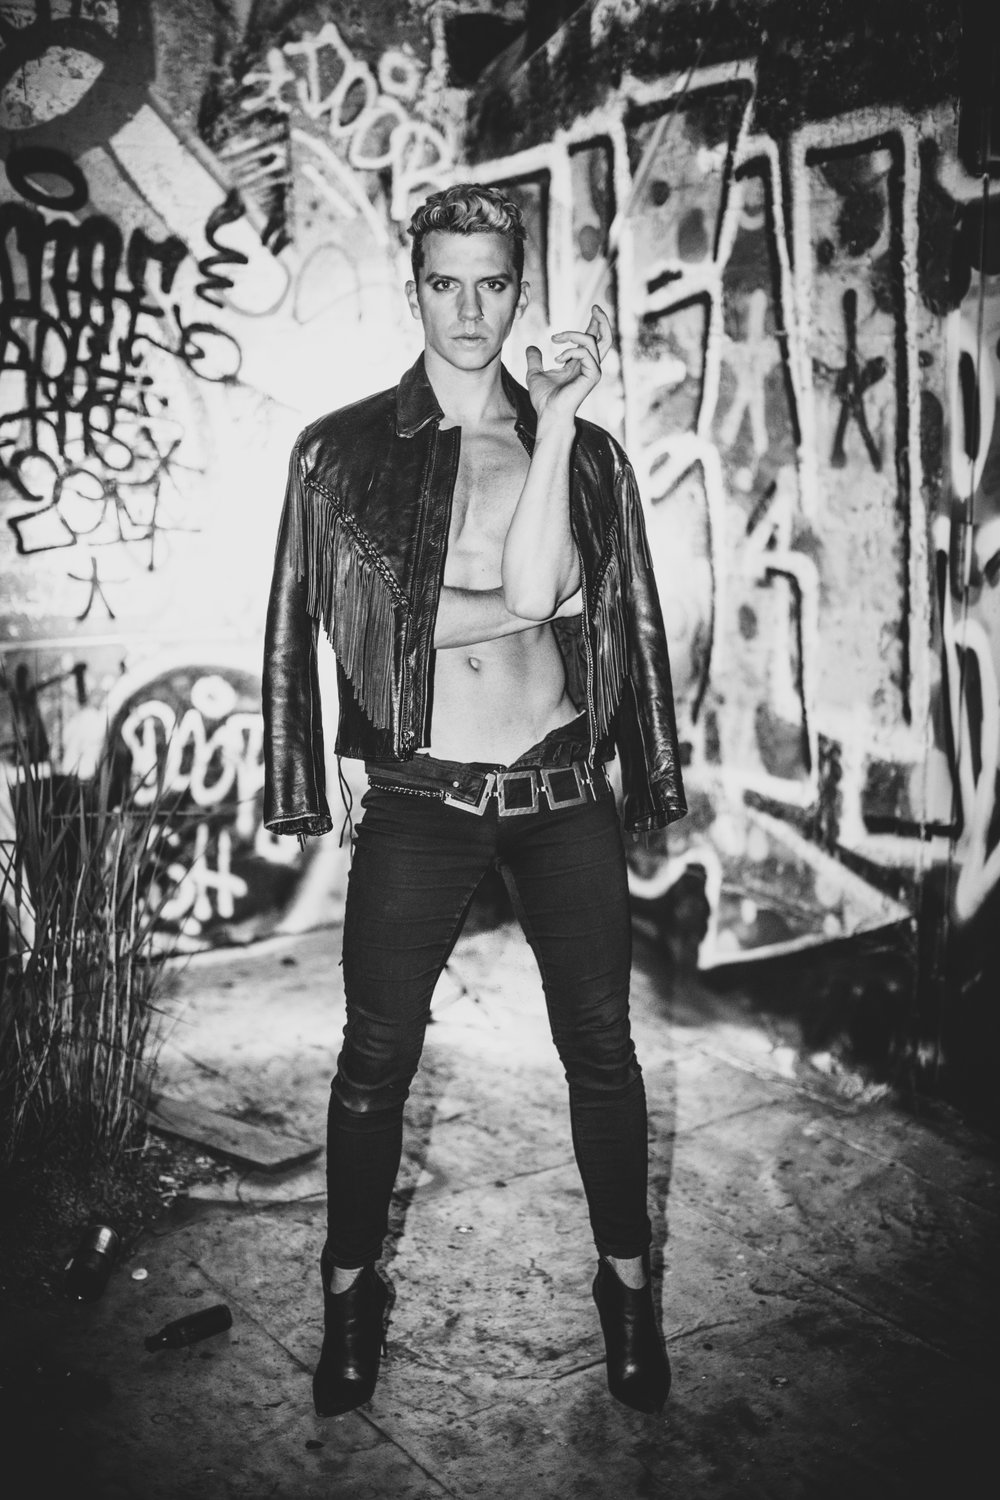 WBC Photo shoots lead singer, Richie Bee, of NYC rock band DEITRE in Bushwick, Brooklyn.